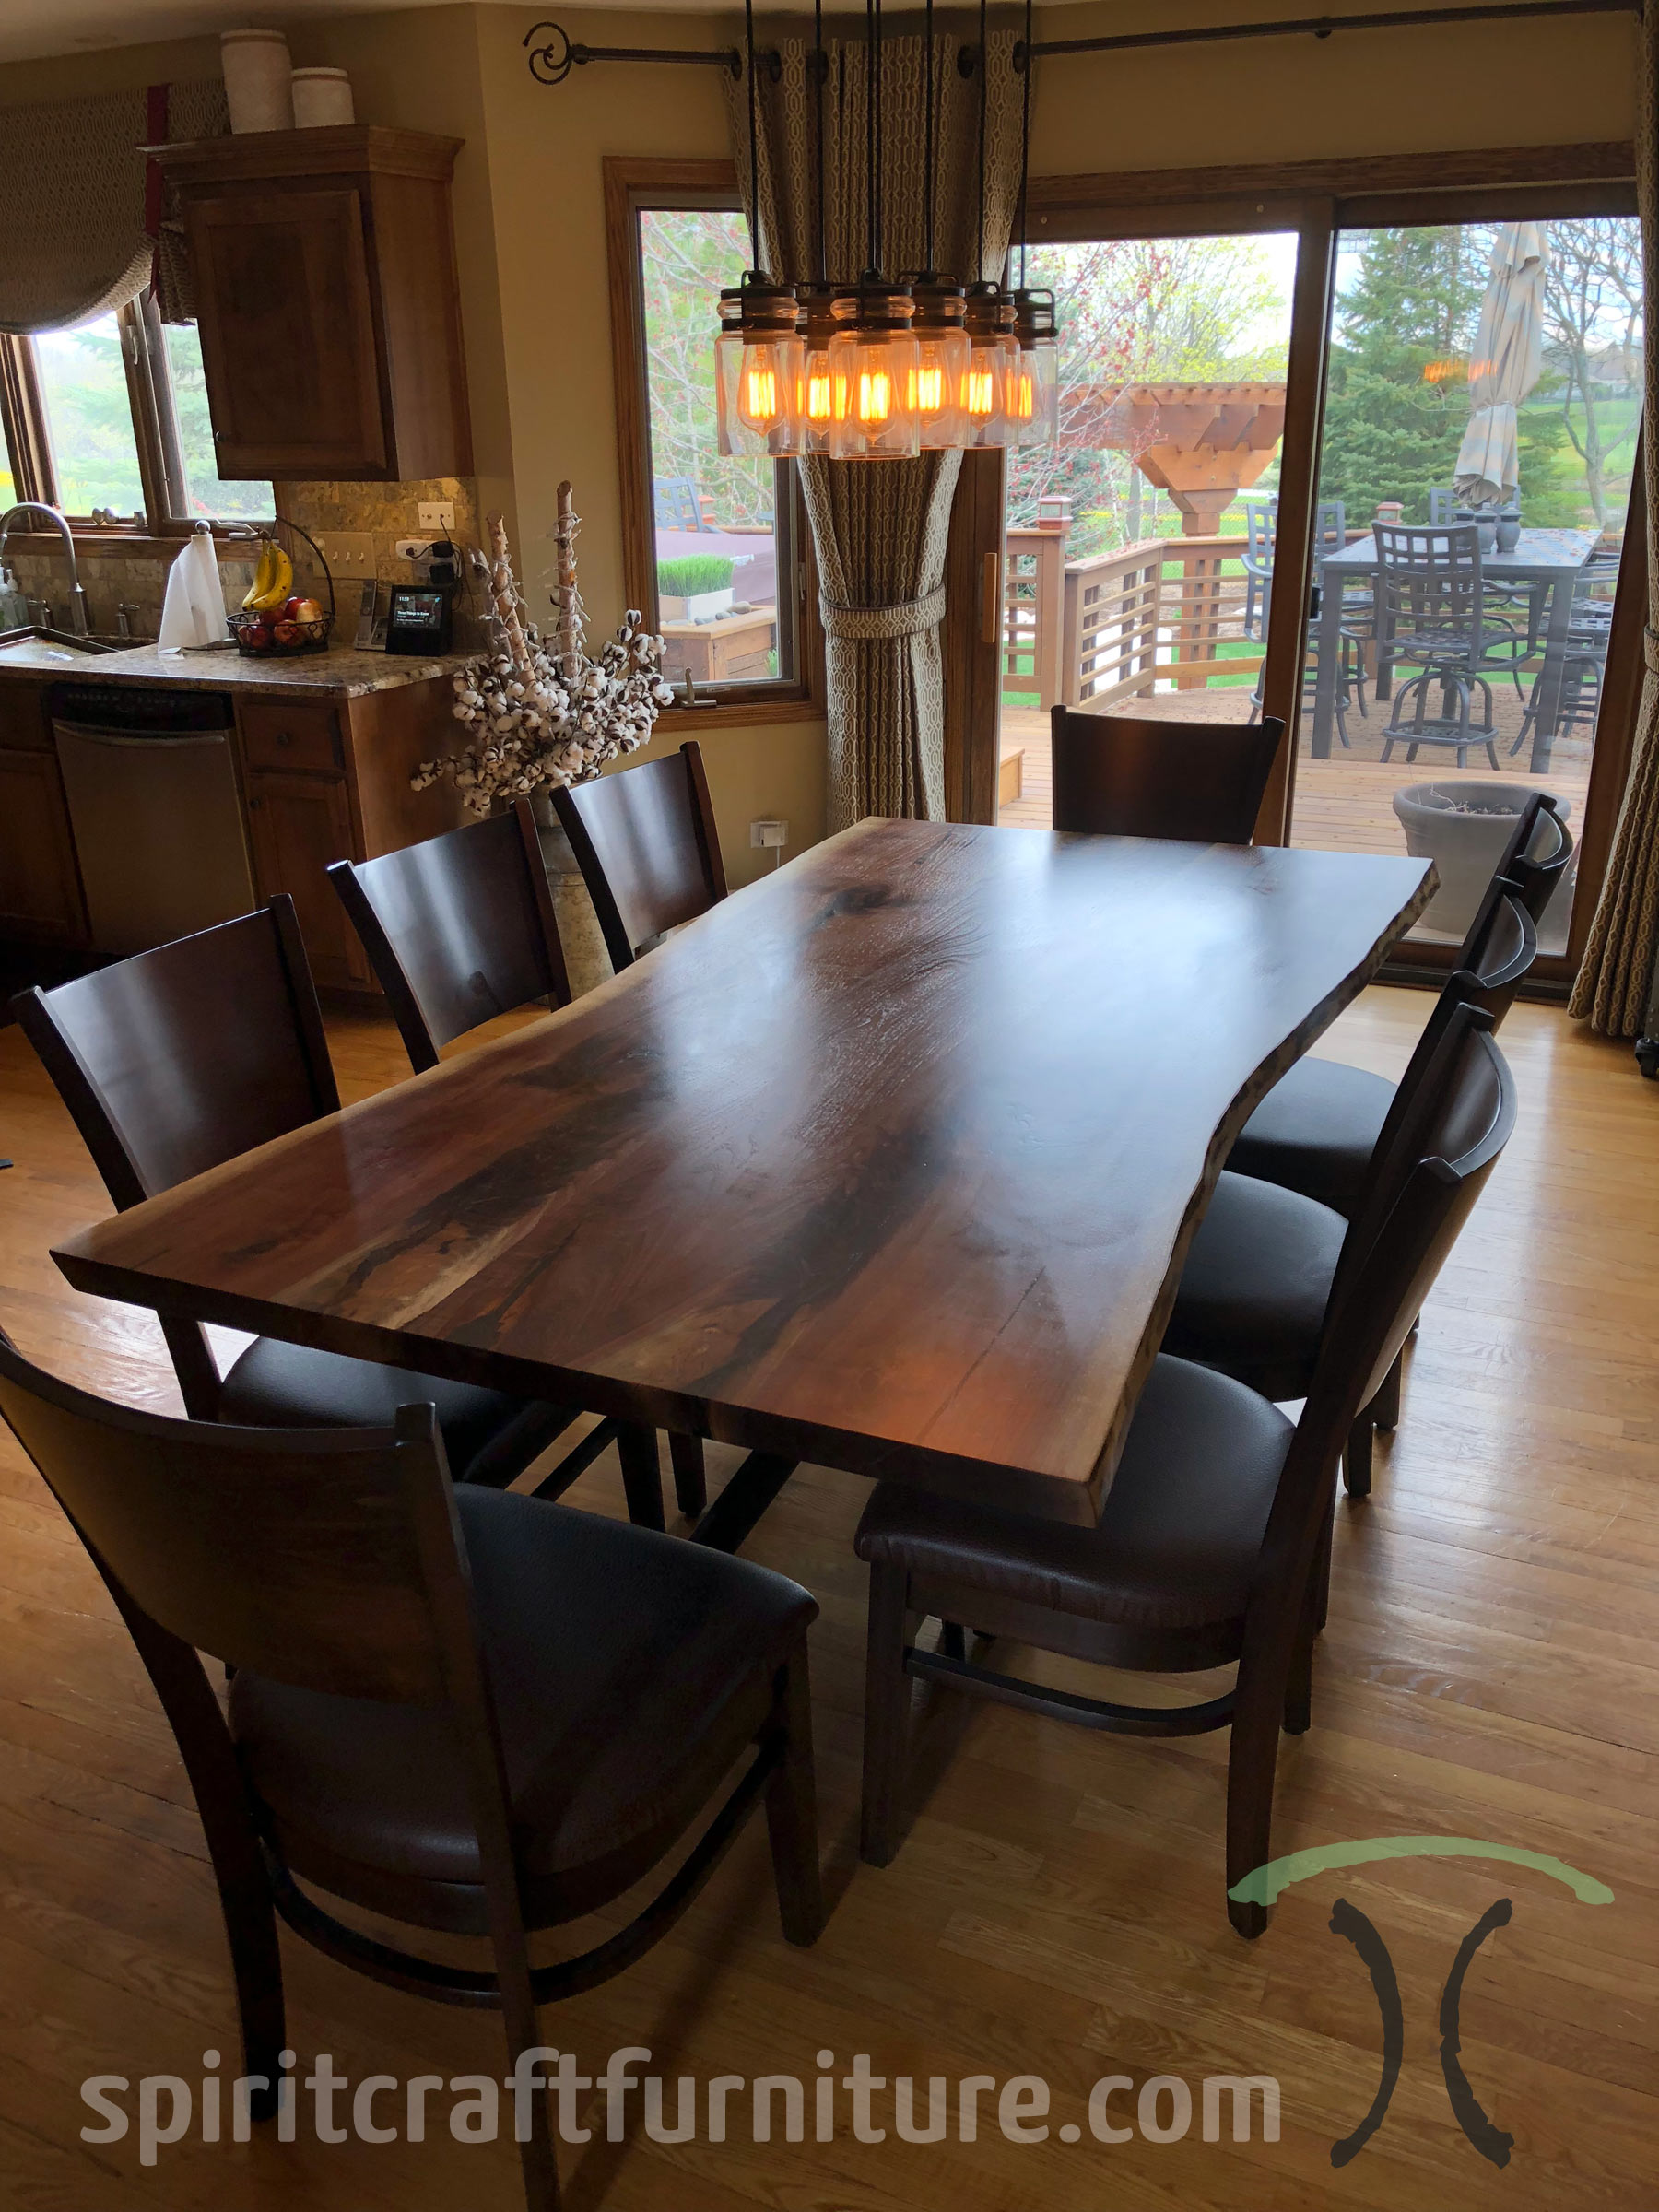 Solid hardwood live edge dining table from slabs of kiln dried Black Walnut with RH Yoder chairs at Spiritcraft Design Furniture in East Dundee, Illinois